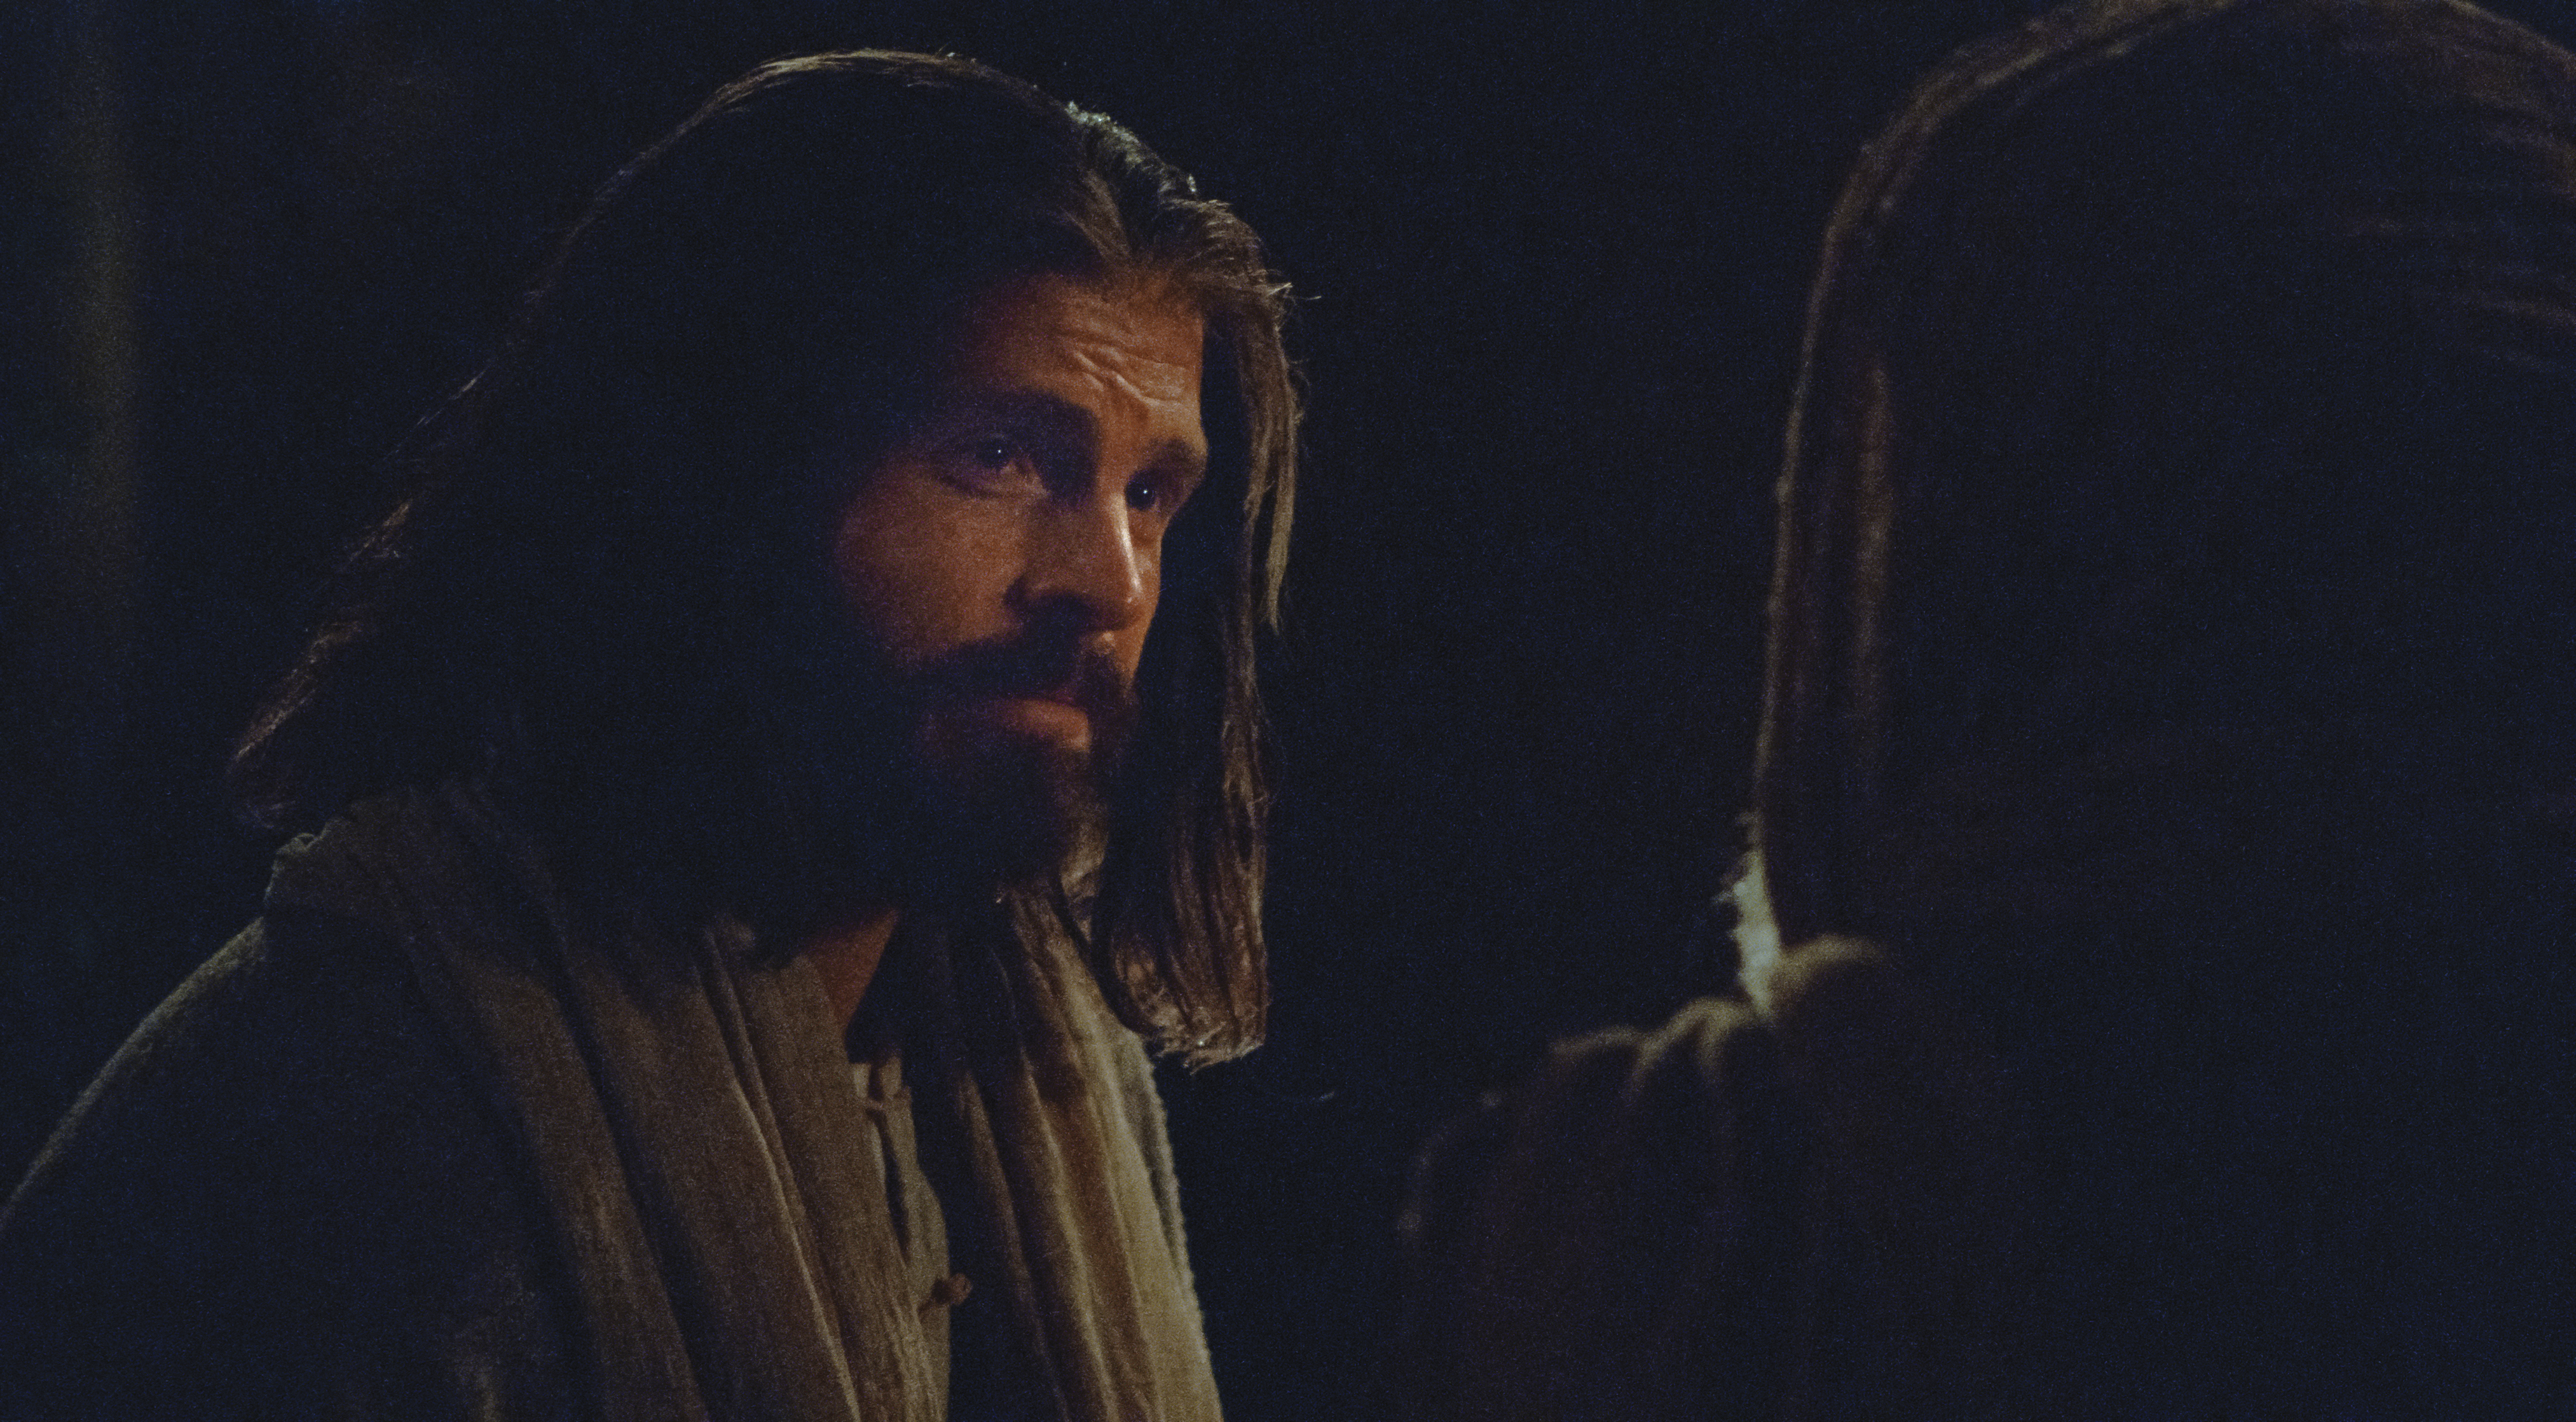 Jesus teaches Nicodemus that man must be born again or he cannot enter the kingdom of God.